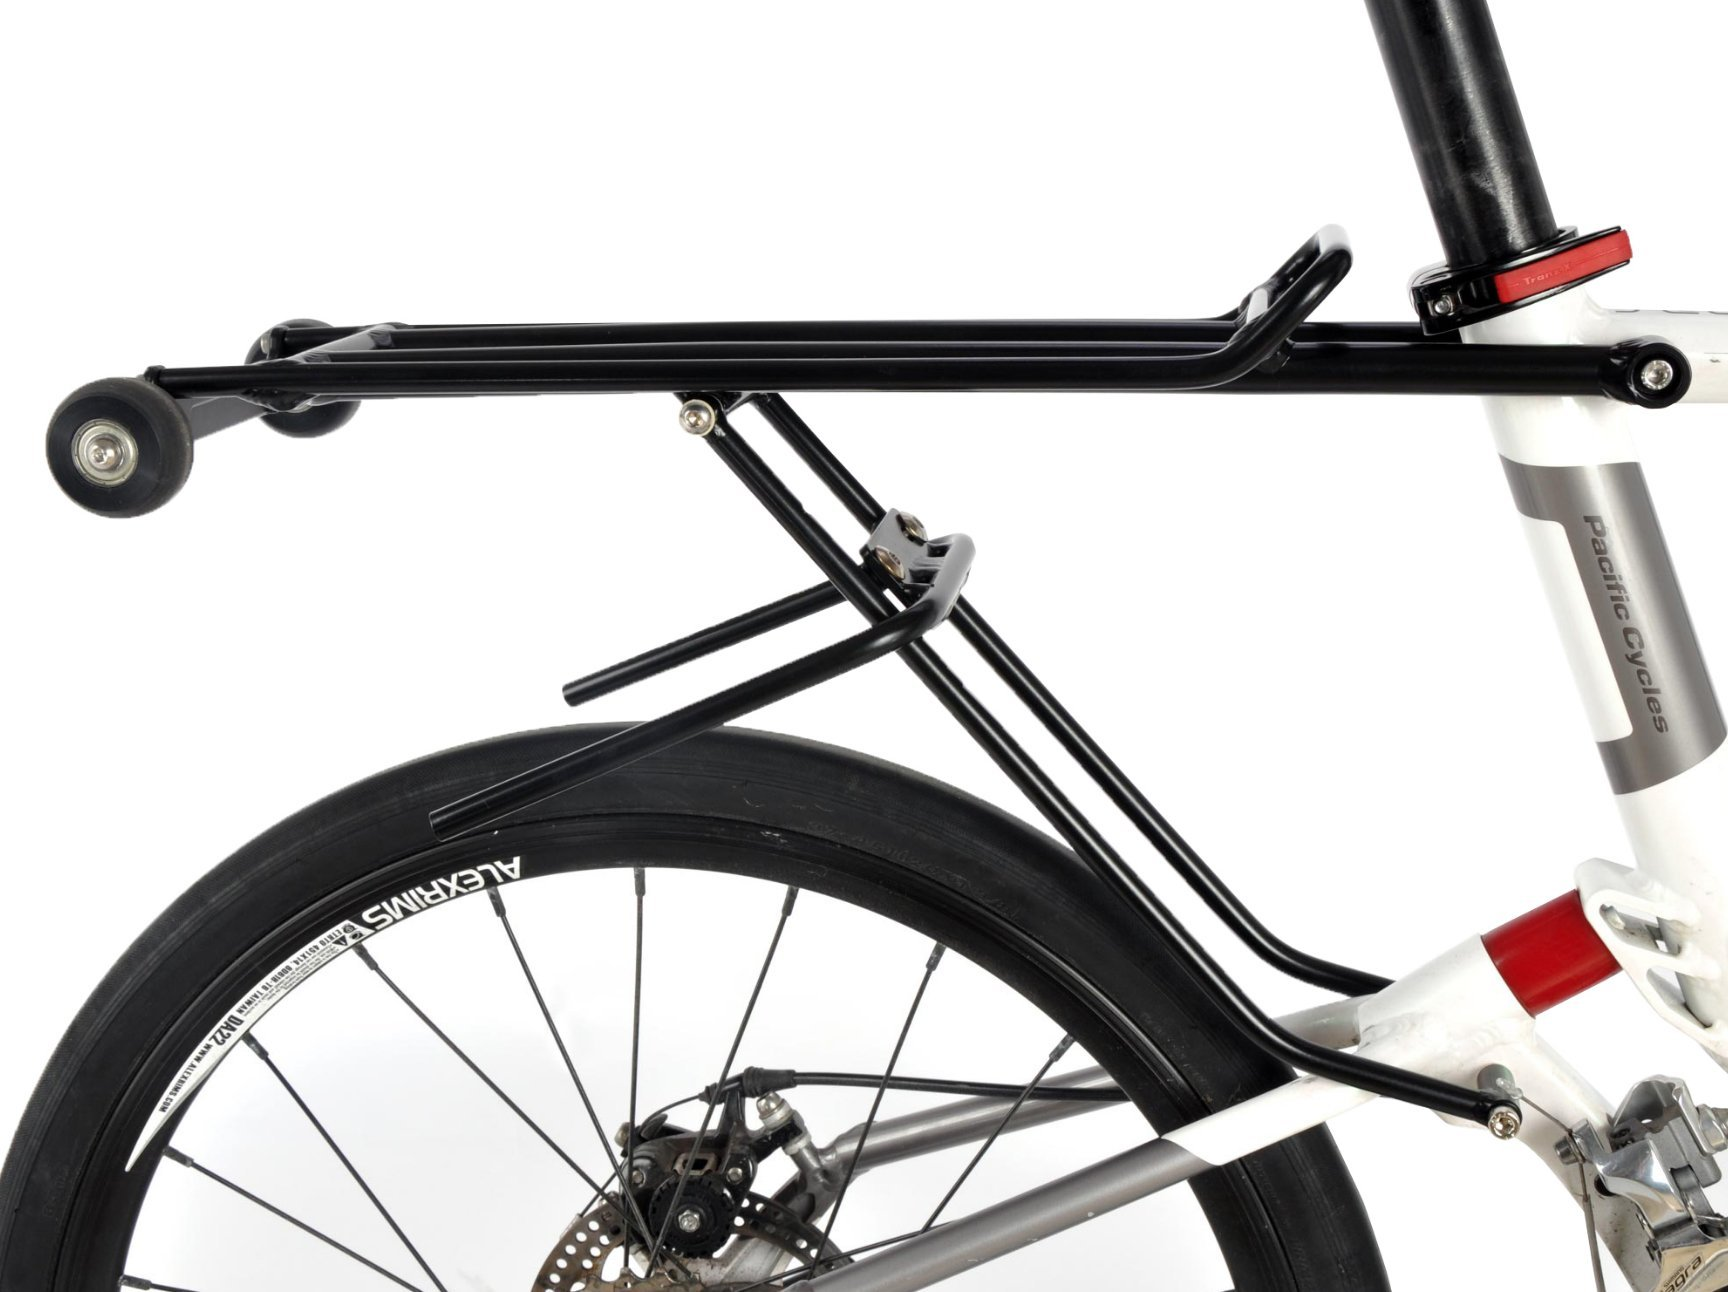 Rear Rack with wheels for Pacific Cycles IF REACH T20 R20 Mini Velo Folding Bikes by IF REACH (Image #1)